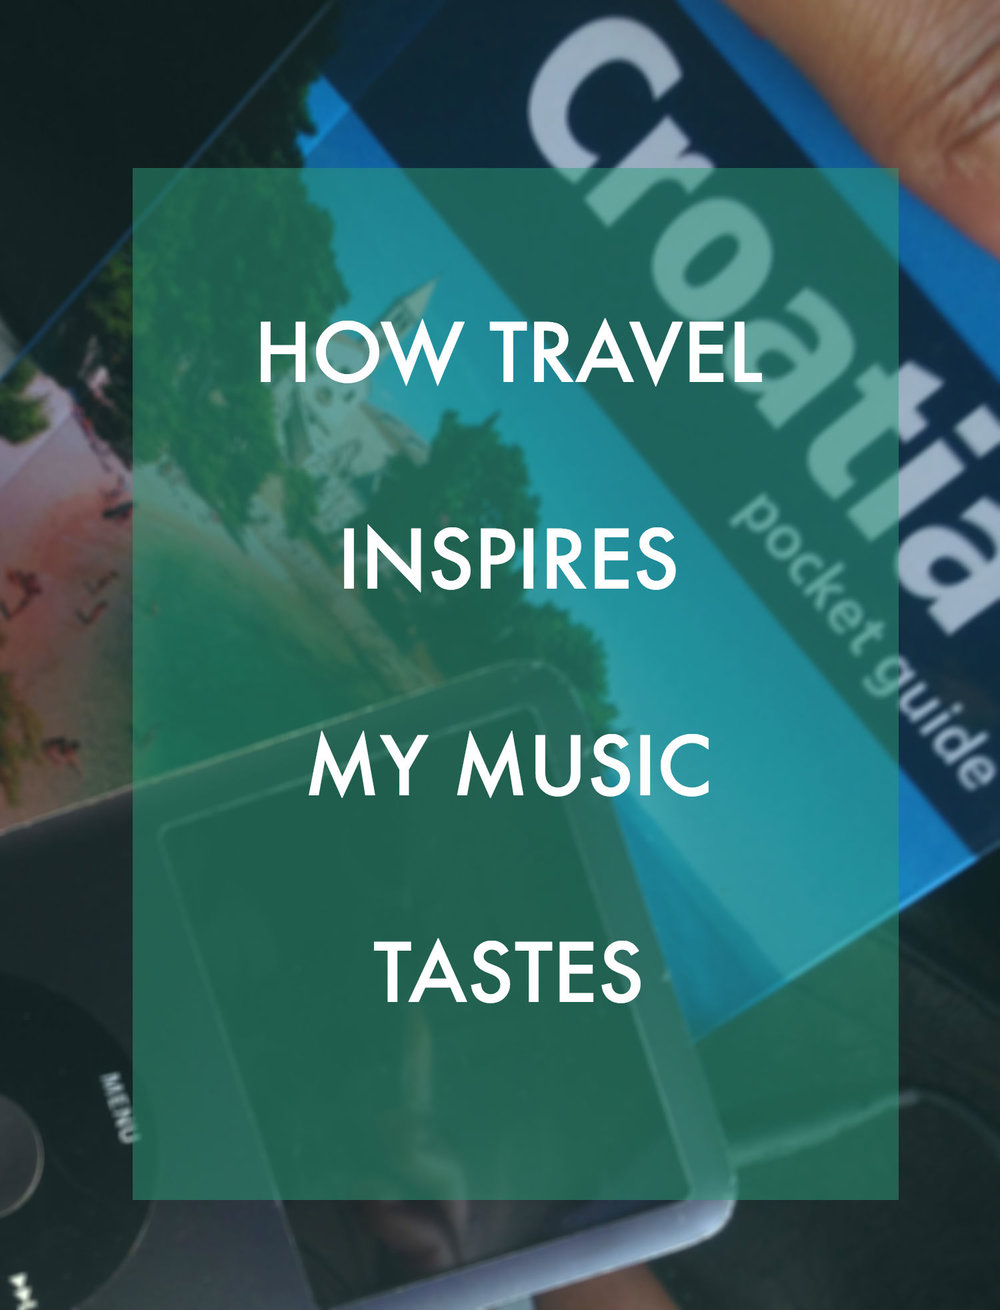 HOW TRAVEL INSPIRES MY MUSIC TASTES